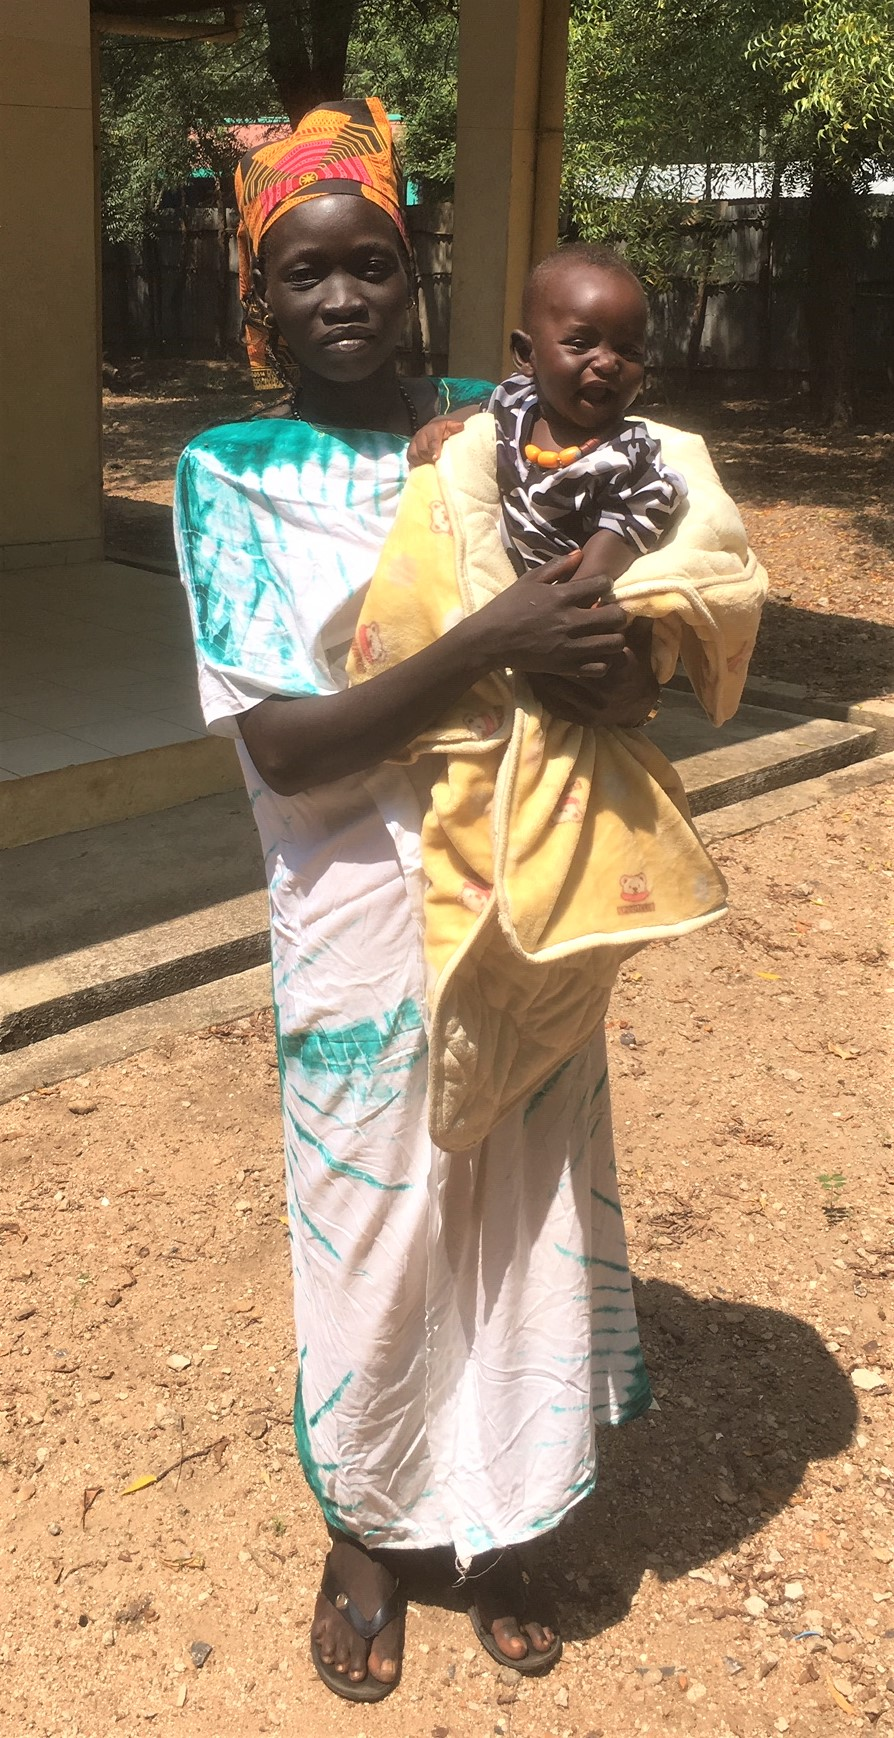 Mary Nyajuok John Palek from Jewi Refugee camp. She came to the first session of the Audio training in June and was VERY pregnant. Now she's back with her first-born, son Boi (meaning Light). She has been named as the leader of the trauma healing group in her camp.